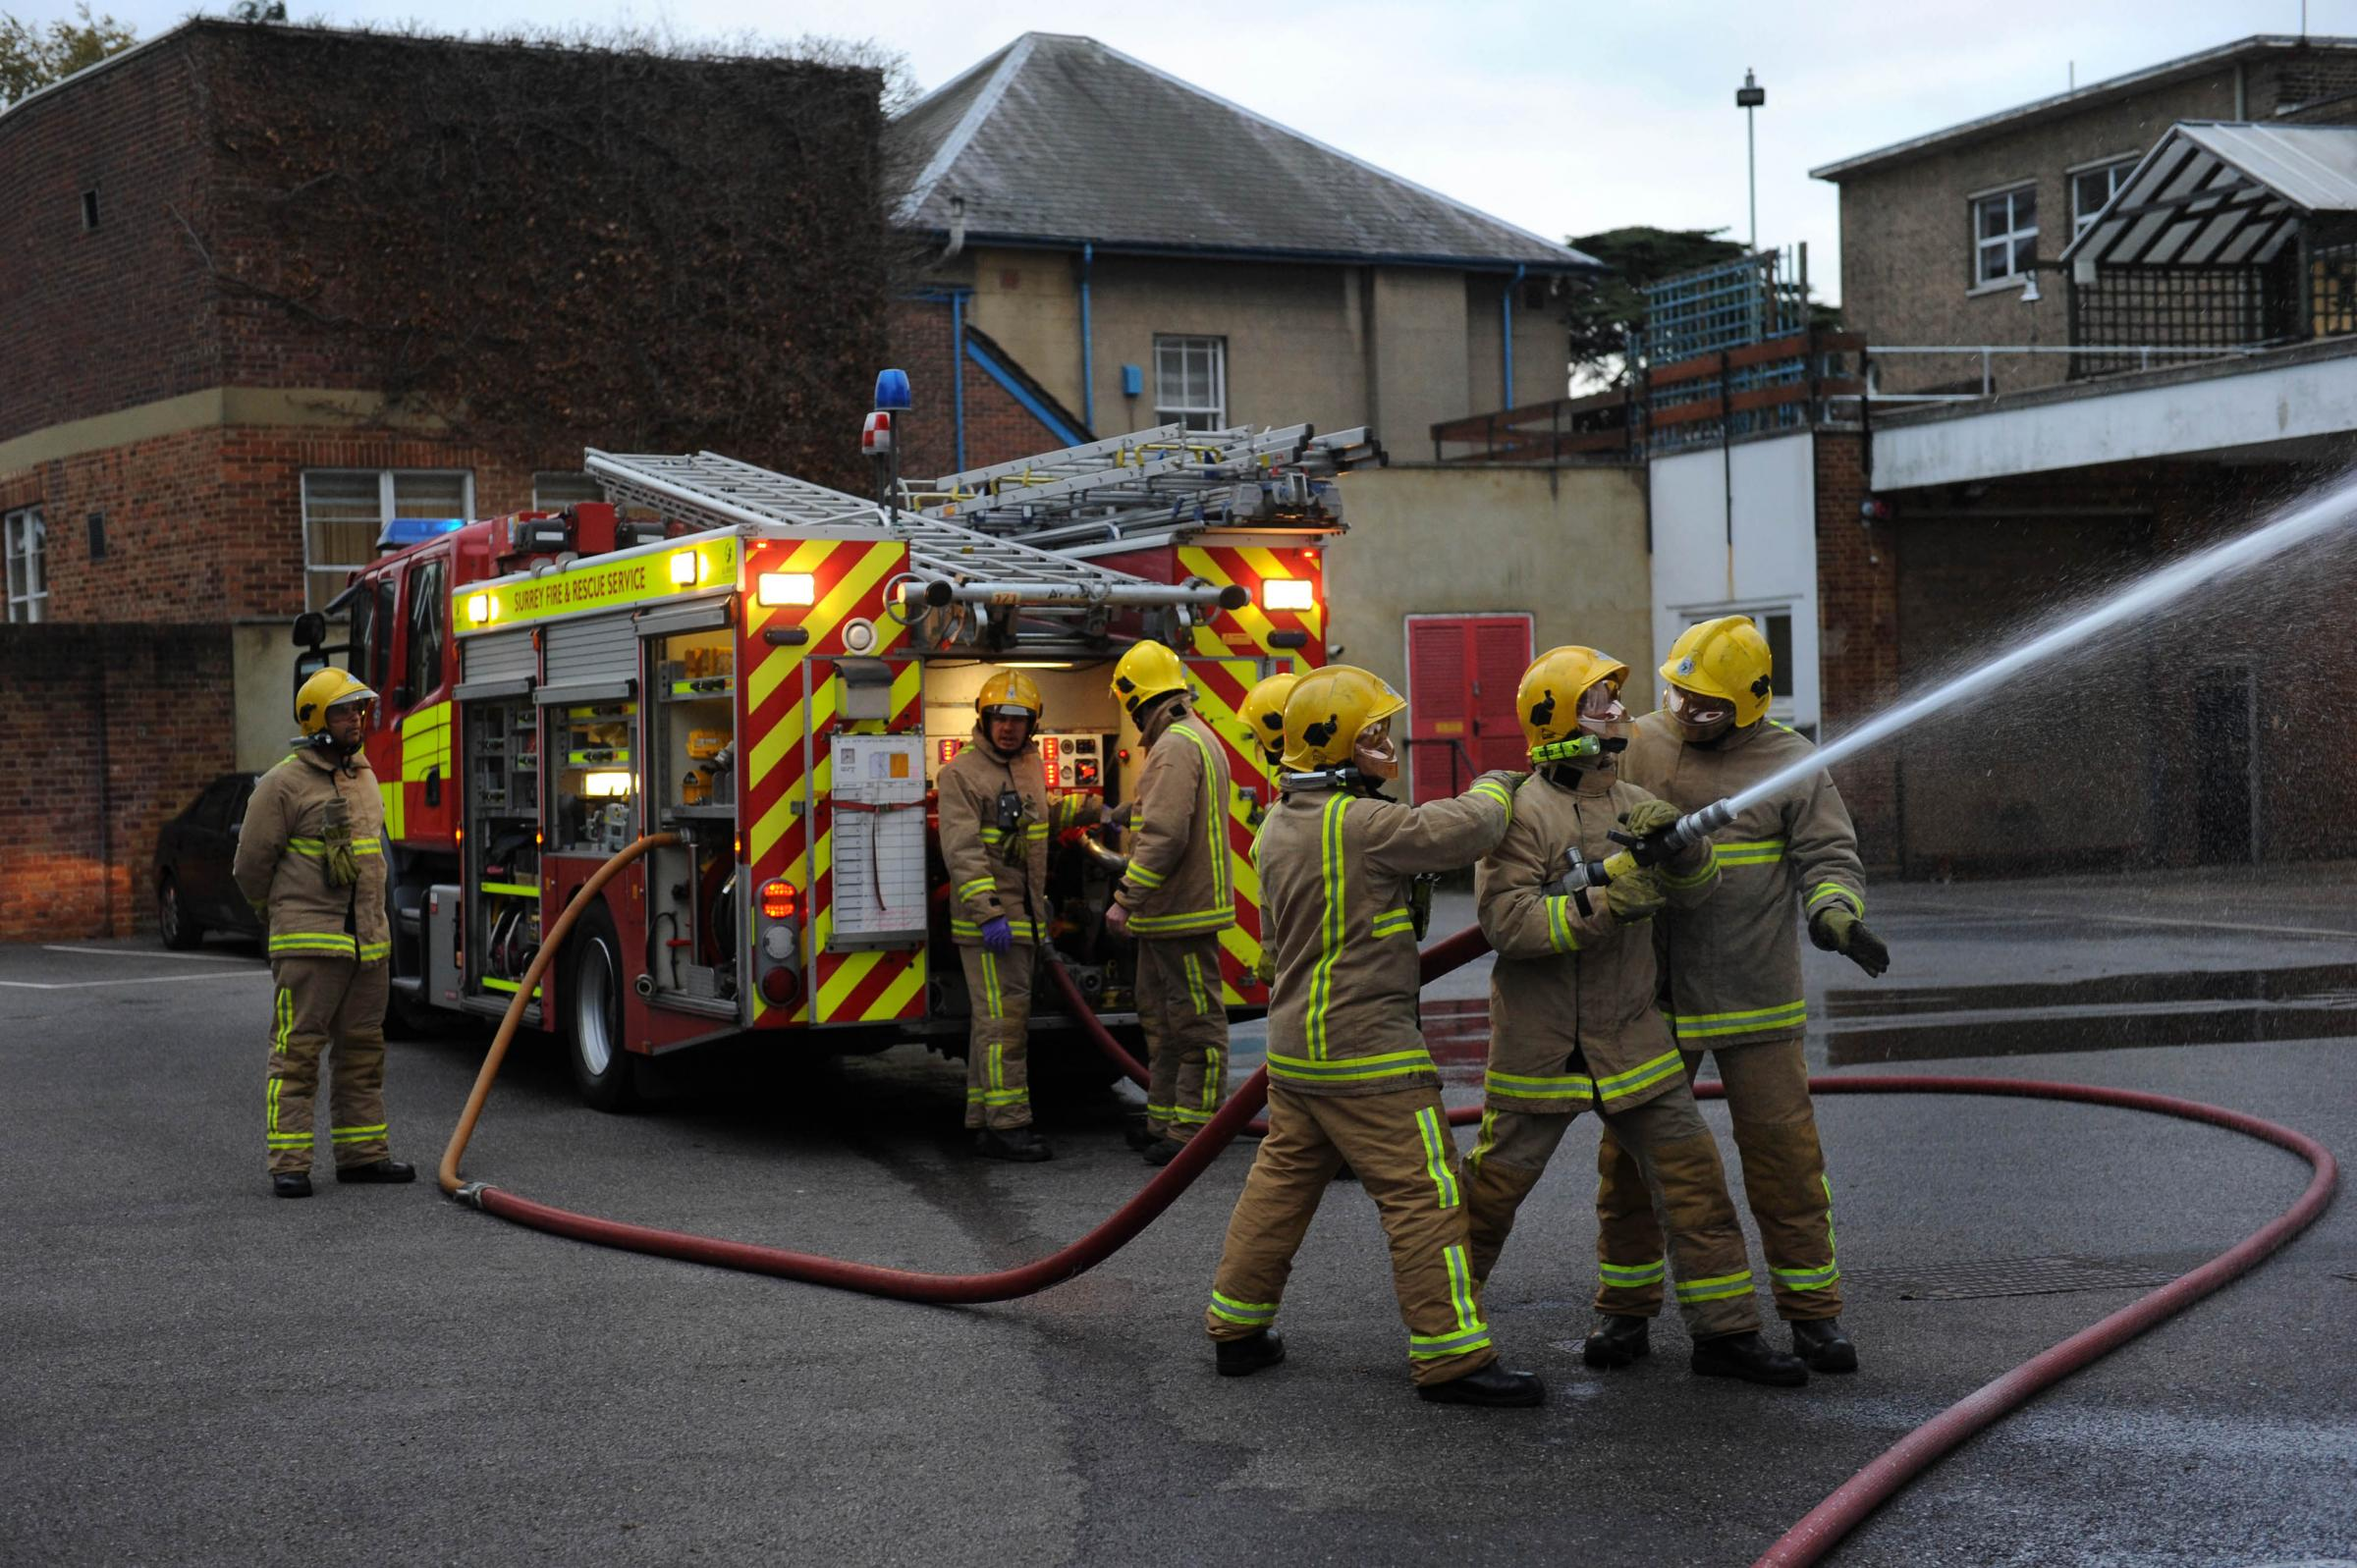 Epsom fire station is set to lose one of its two fire engines